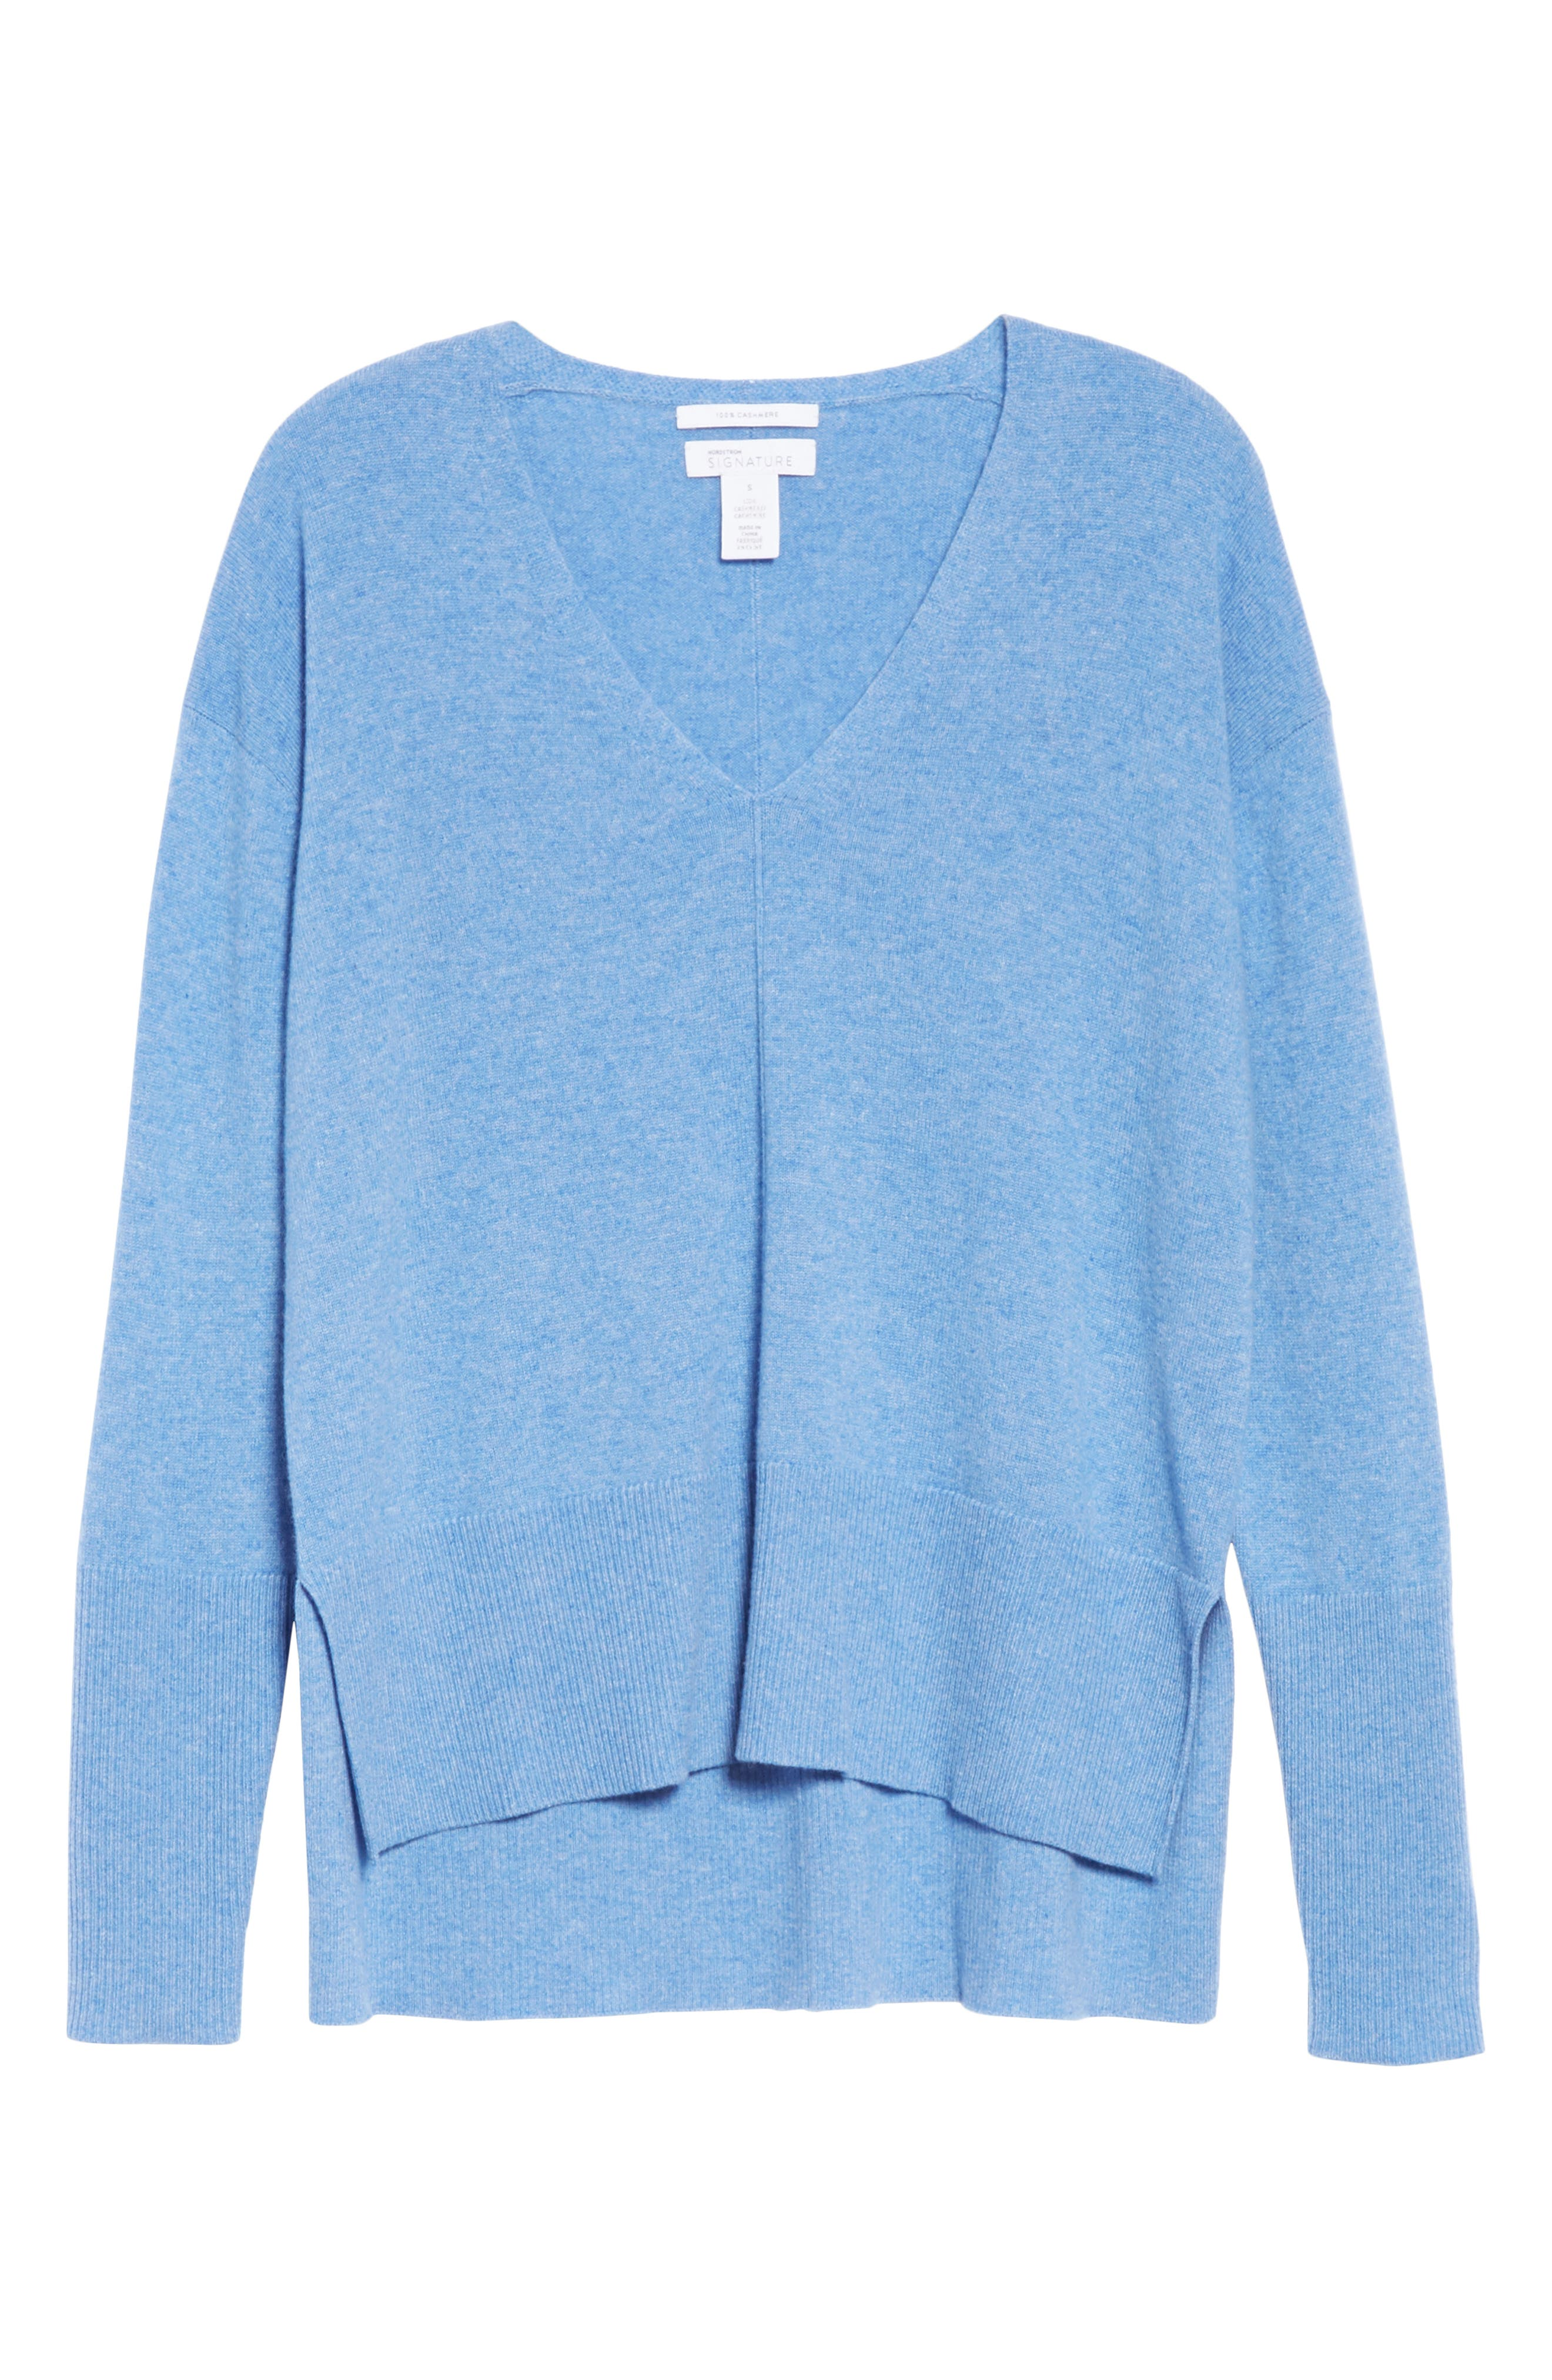 V-Neck High/Low Cashmere Sweater,                             Alternate thumbnail 6, color,                             BLUE PROVENCE HEATHER